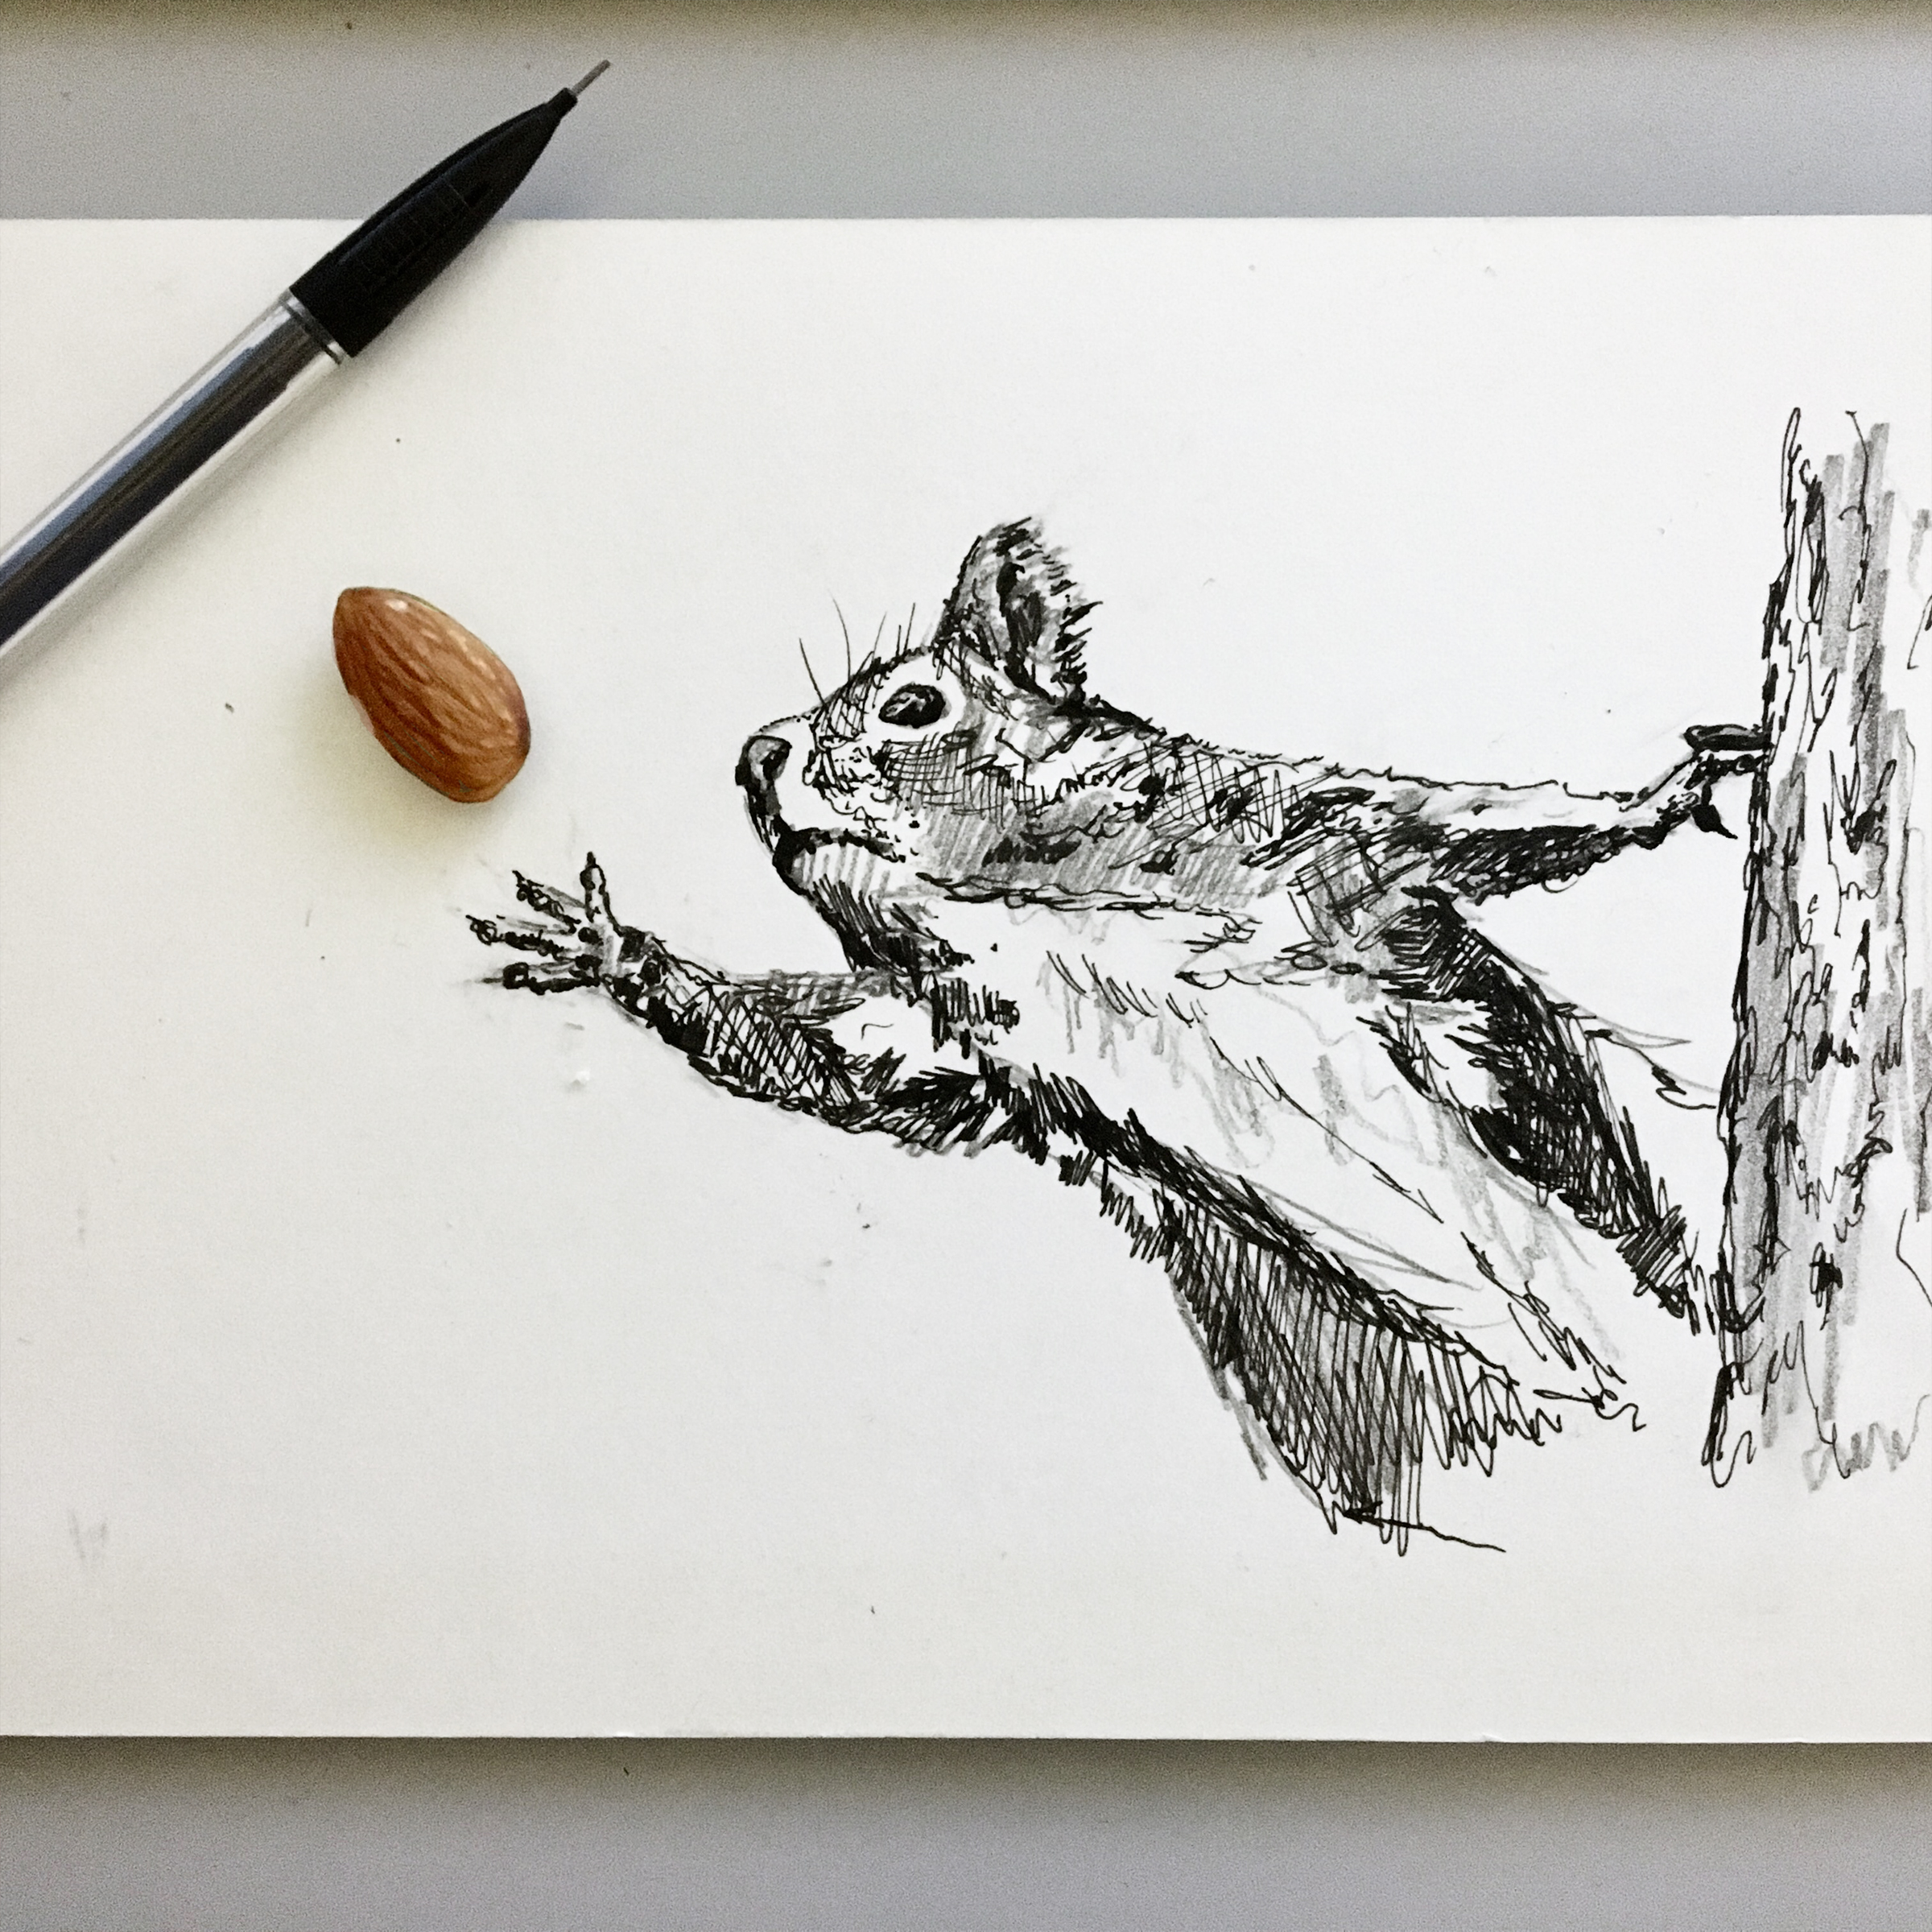 squirrel-with-almond-interactive-drawing-by-jordan-fretz.jpg